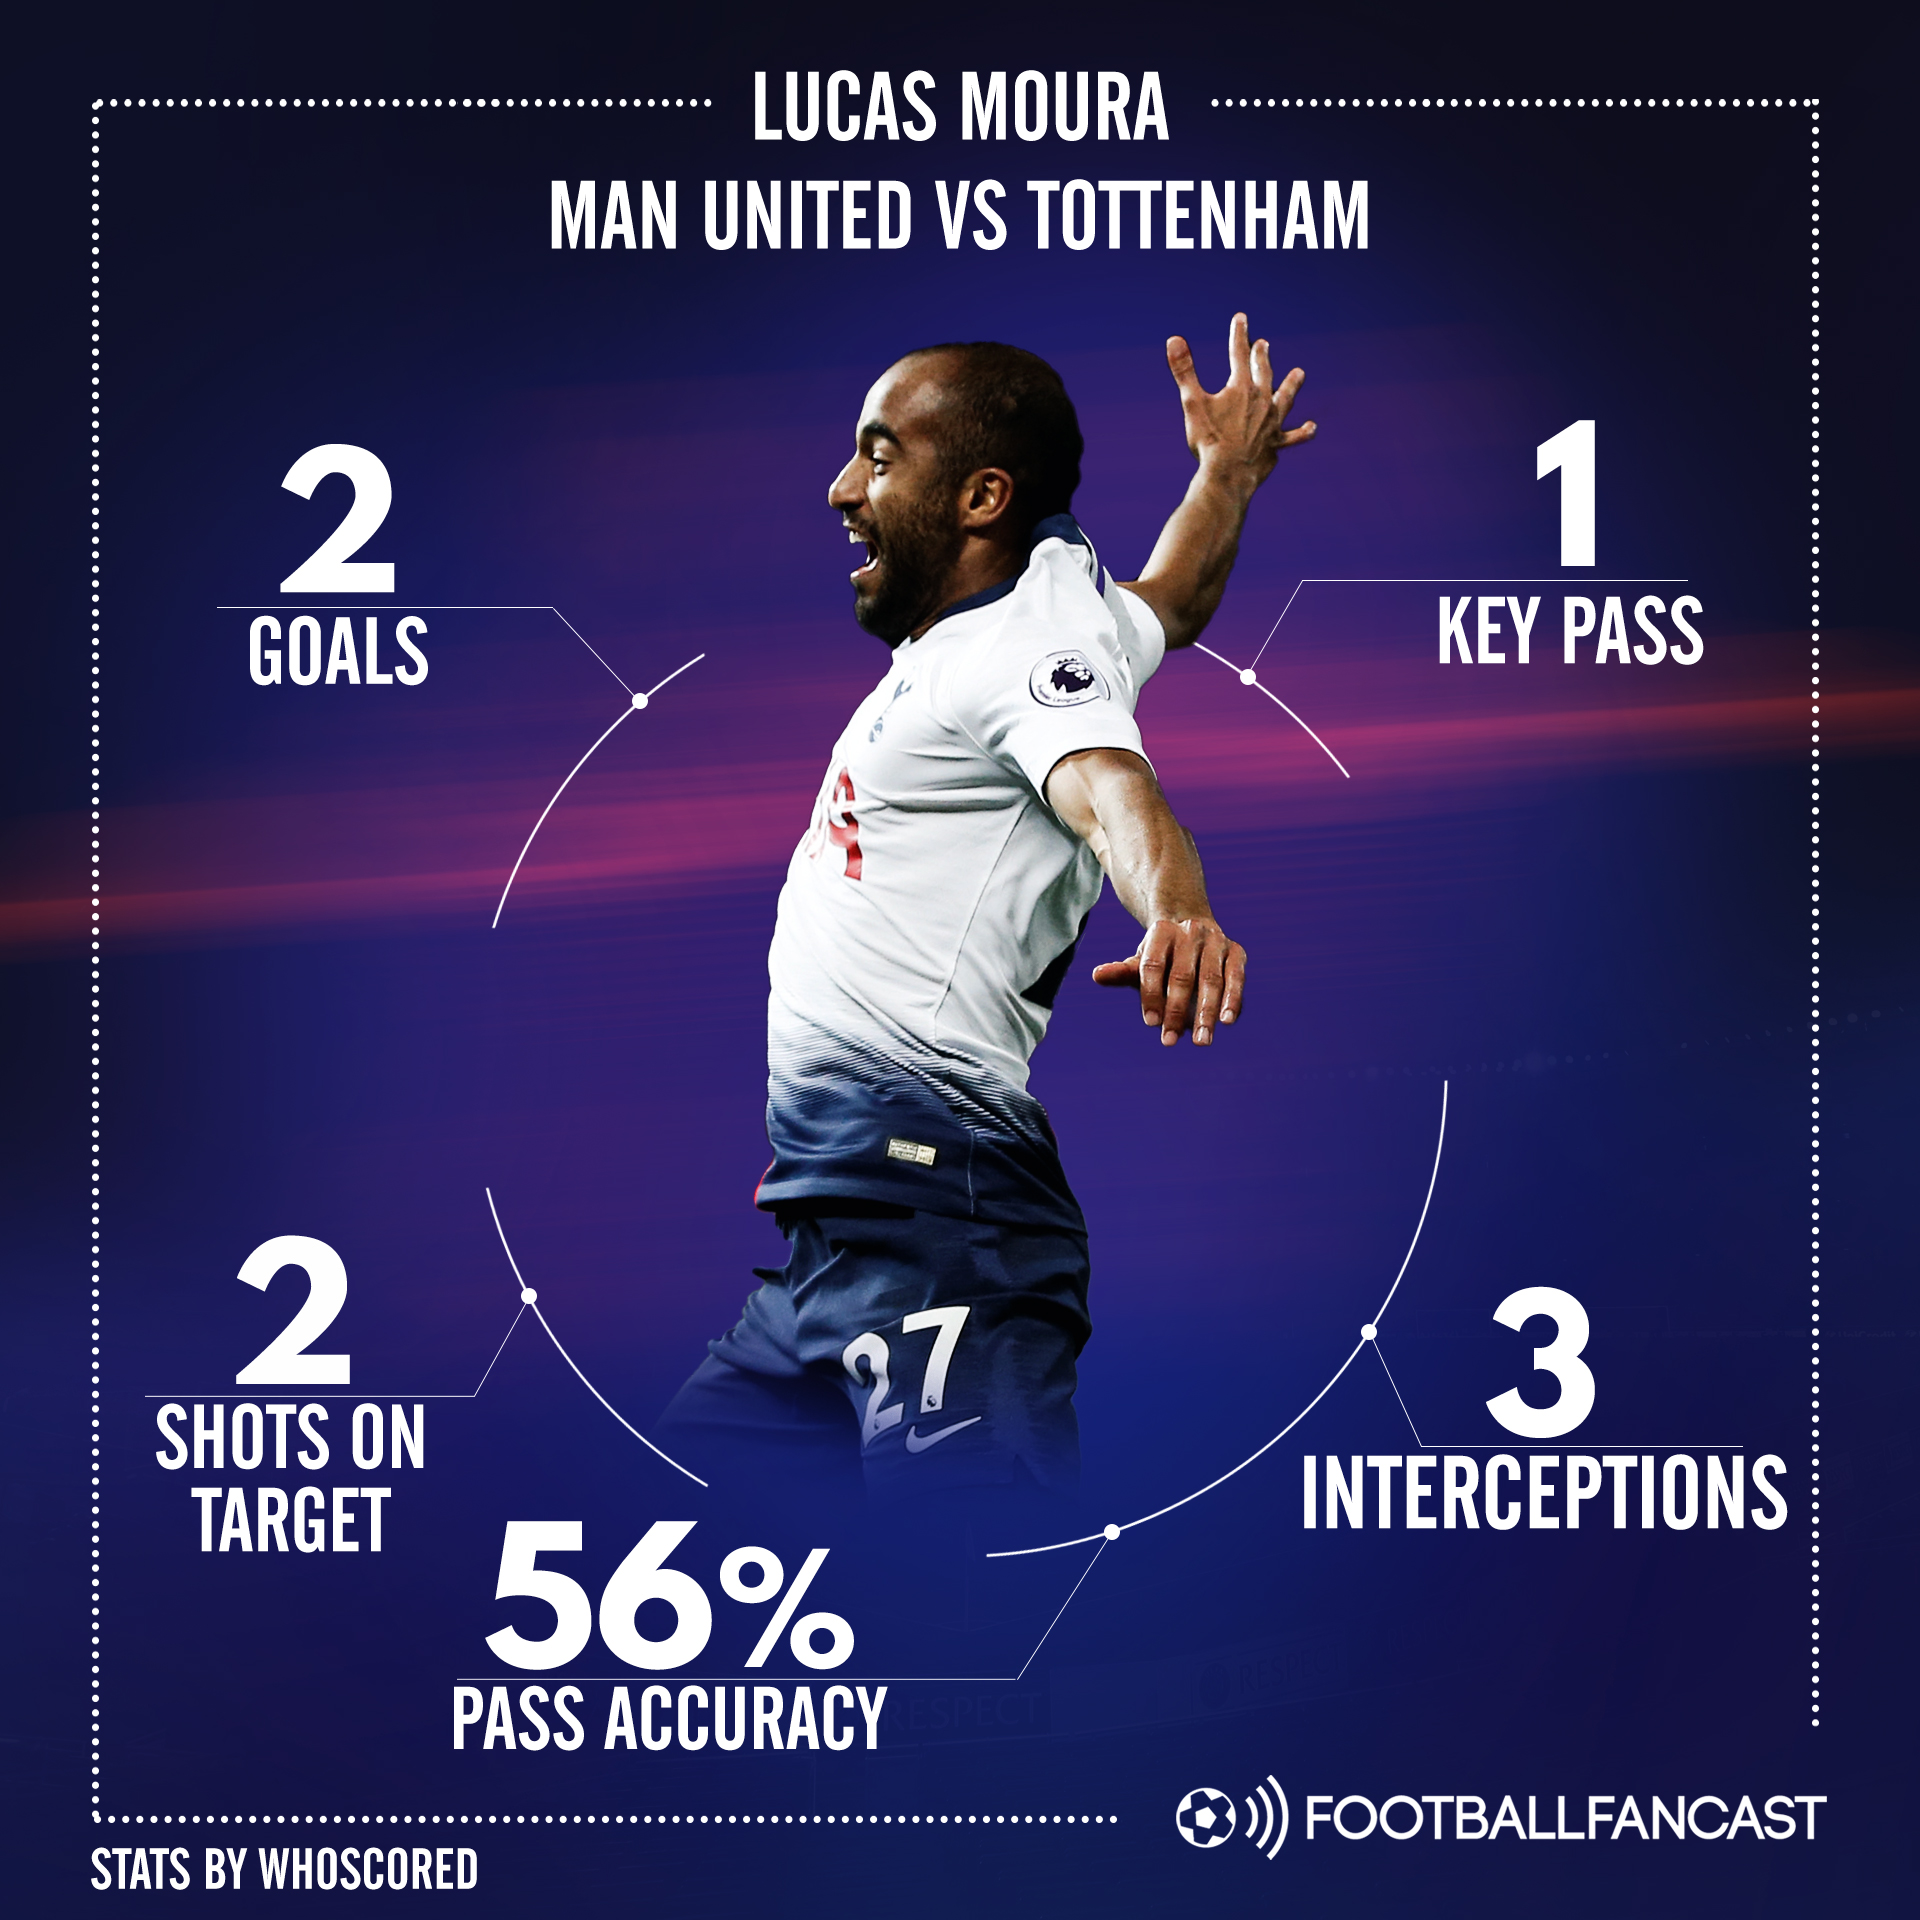 Lucas Moura Tottenham Hotspur Player Analysis